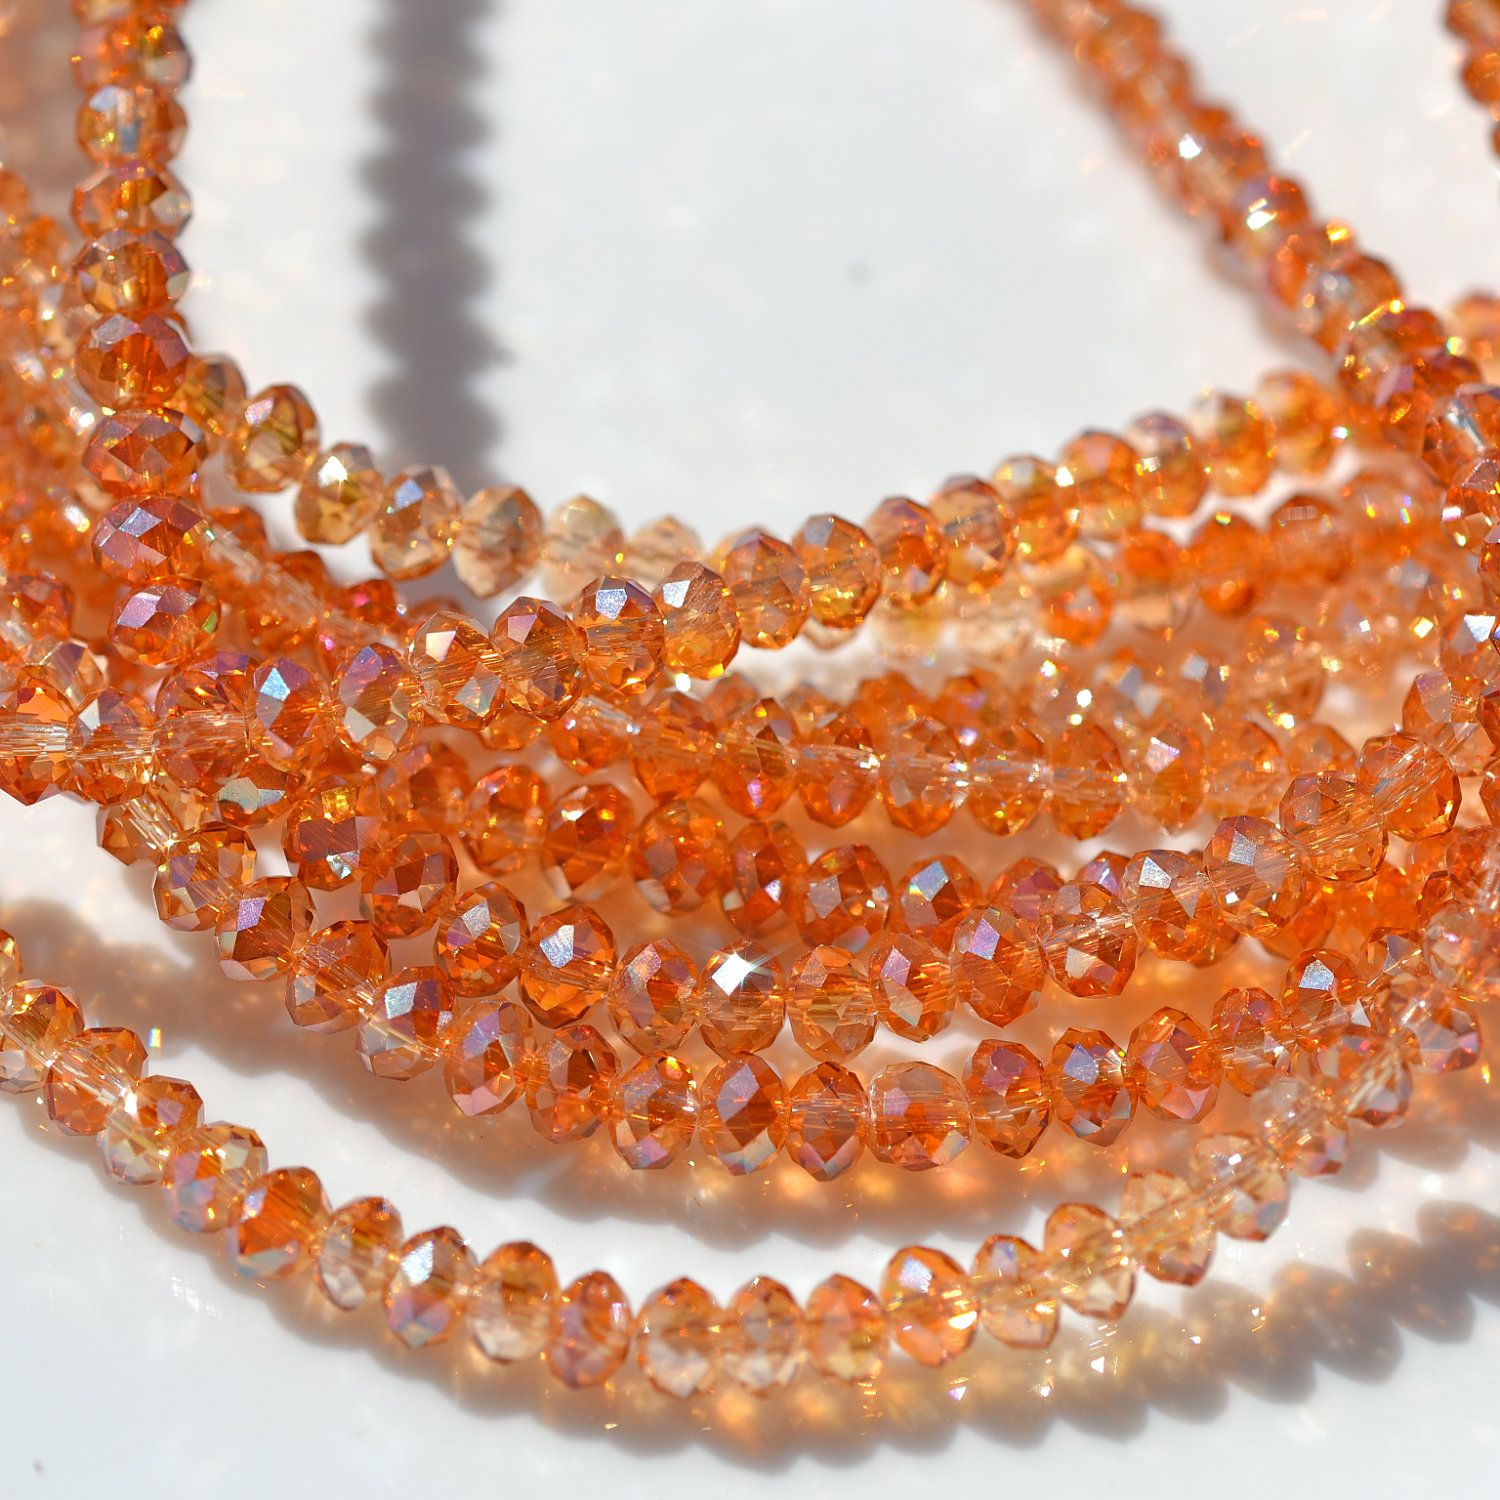 Autumn SUn 4x3mm Faceted Crystal Rondelle Beads